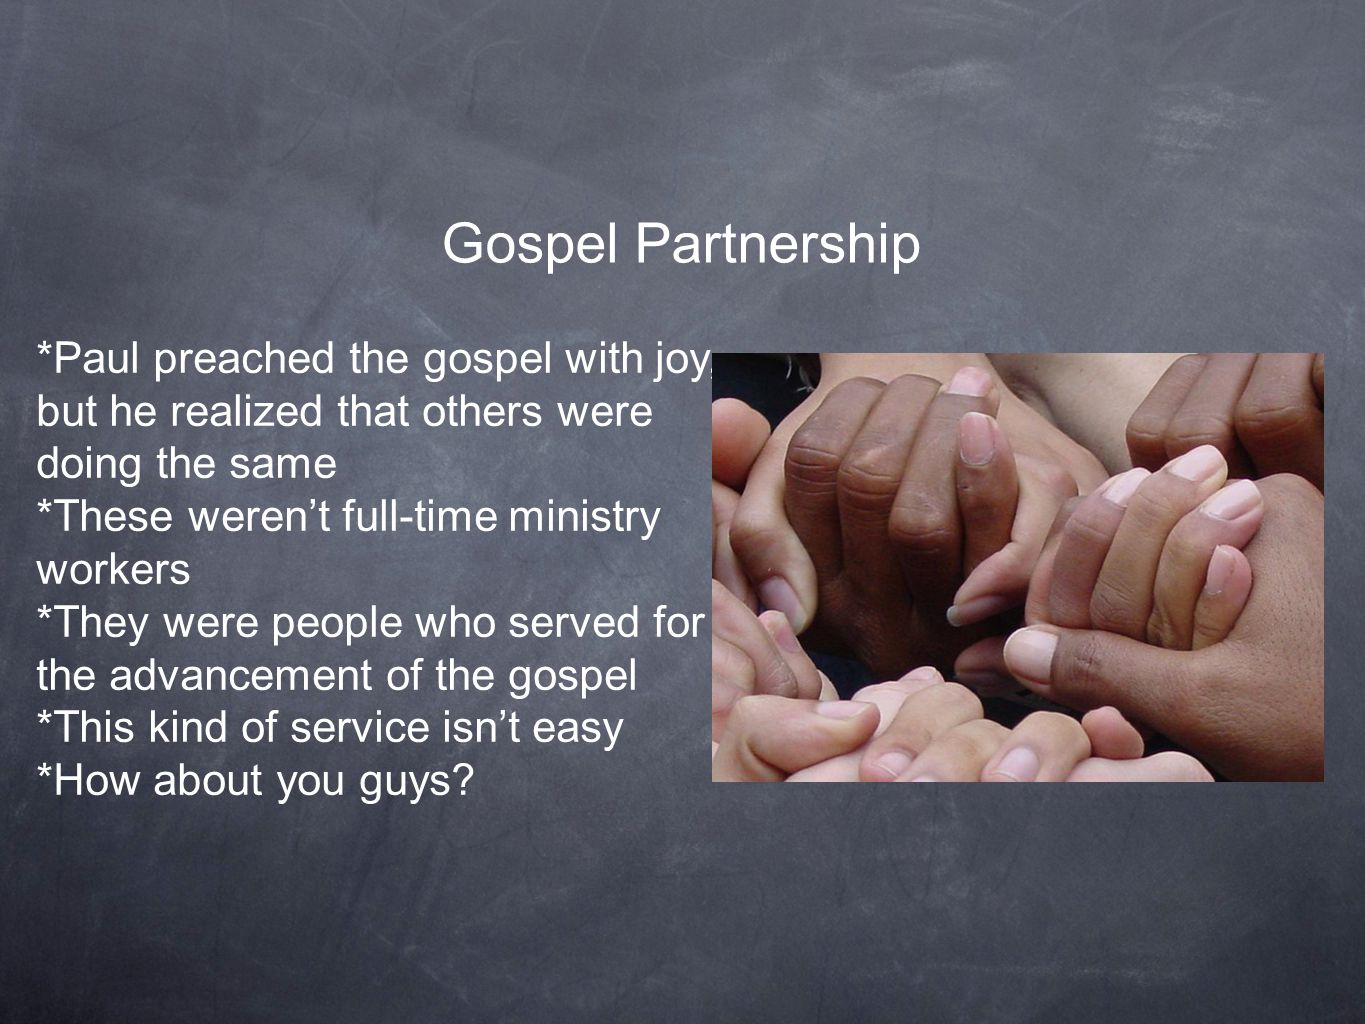 Gospel Partnership *Paul preached the gospel with joy, but he realized that others were doing the same *These weren't full-time ministry workers *They were people who served for the advancement of the gospel *This kind of service isn't easy *How about you guys